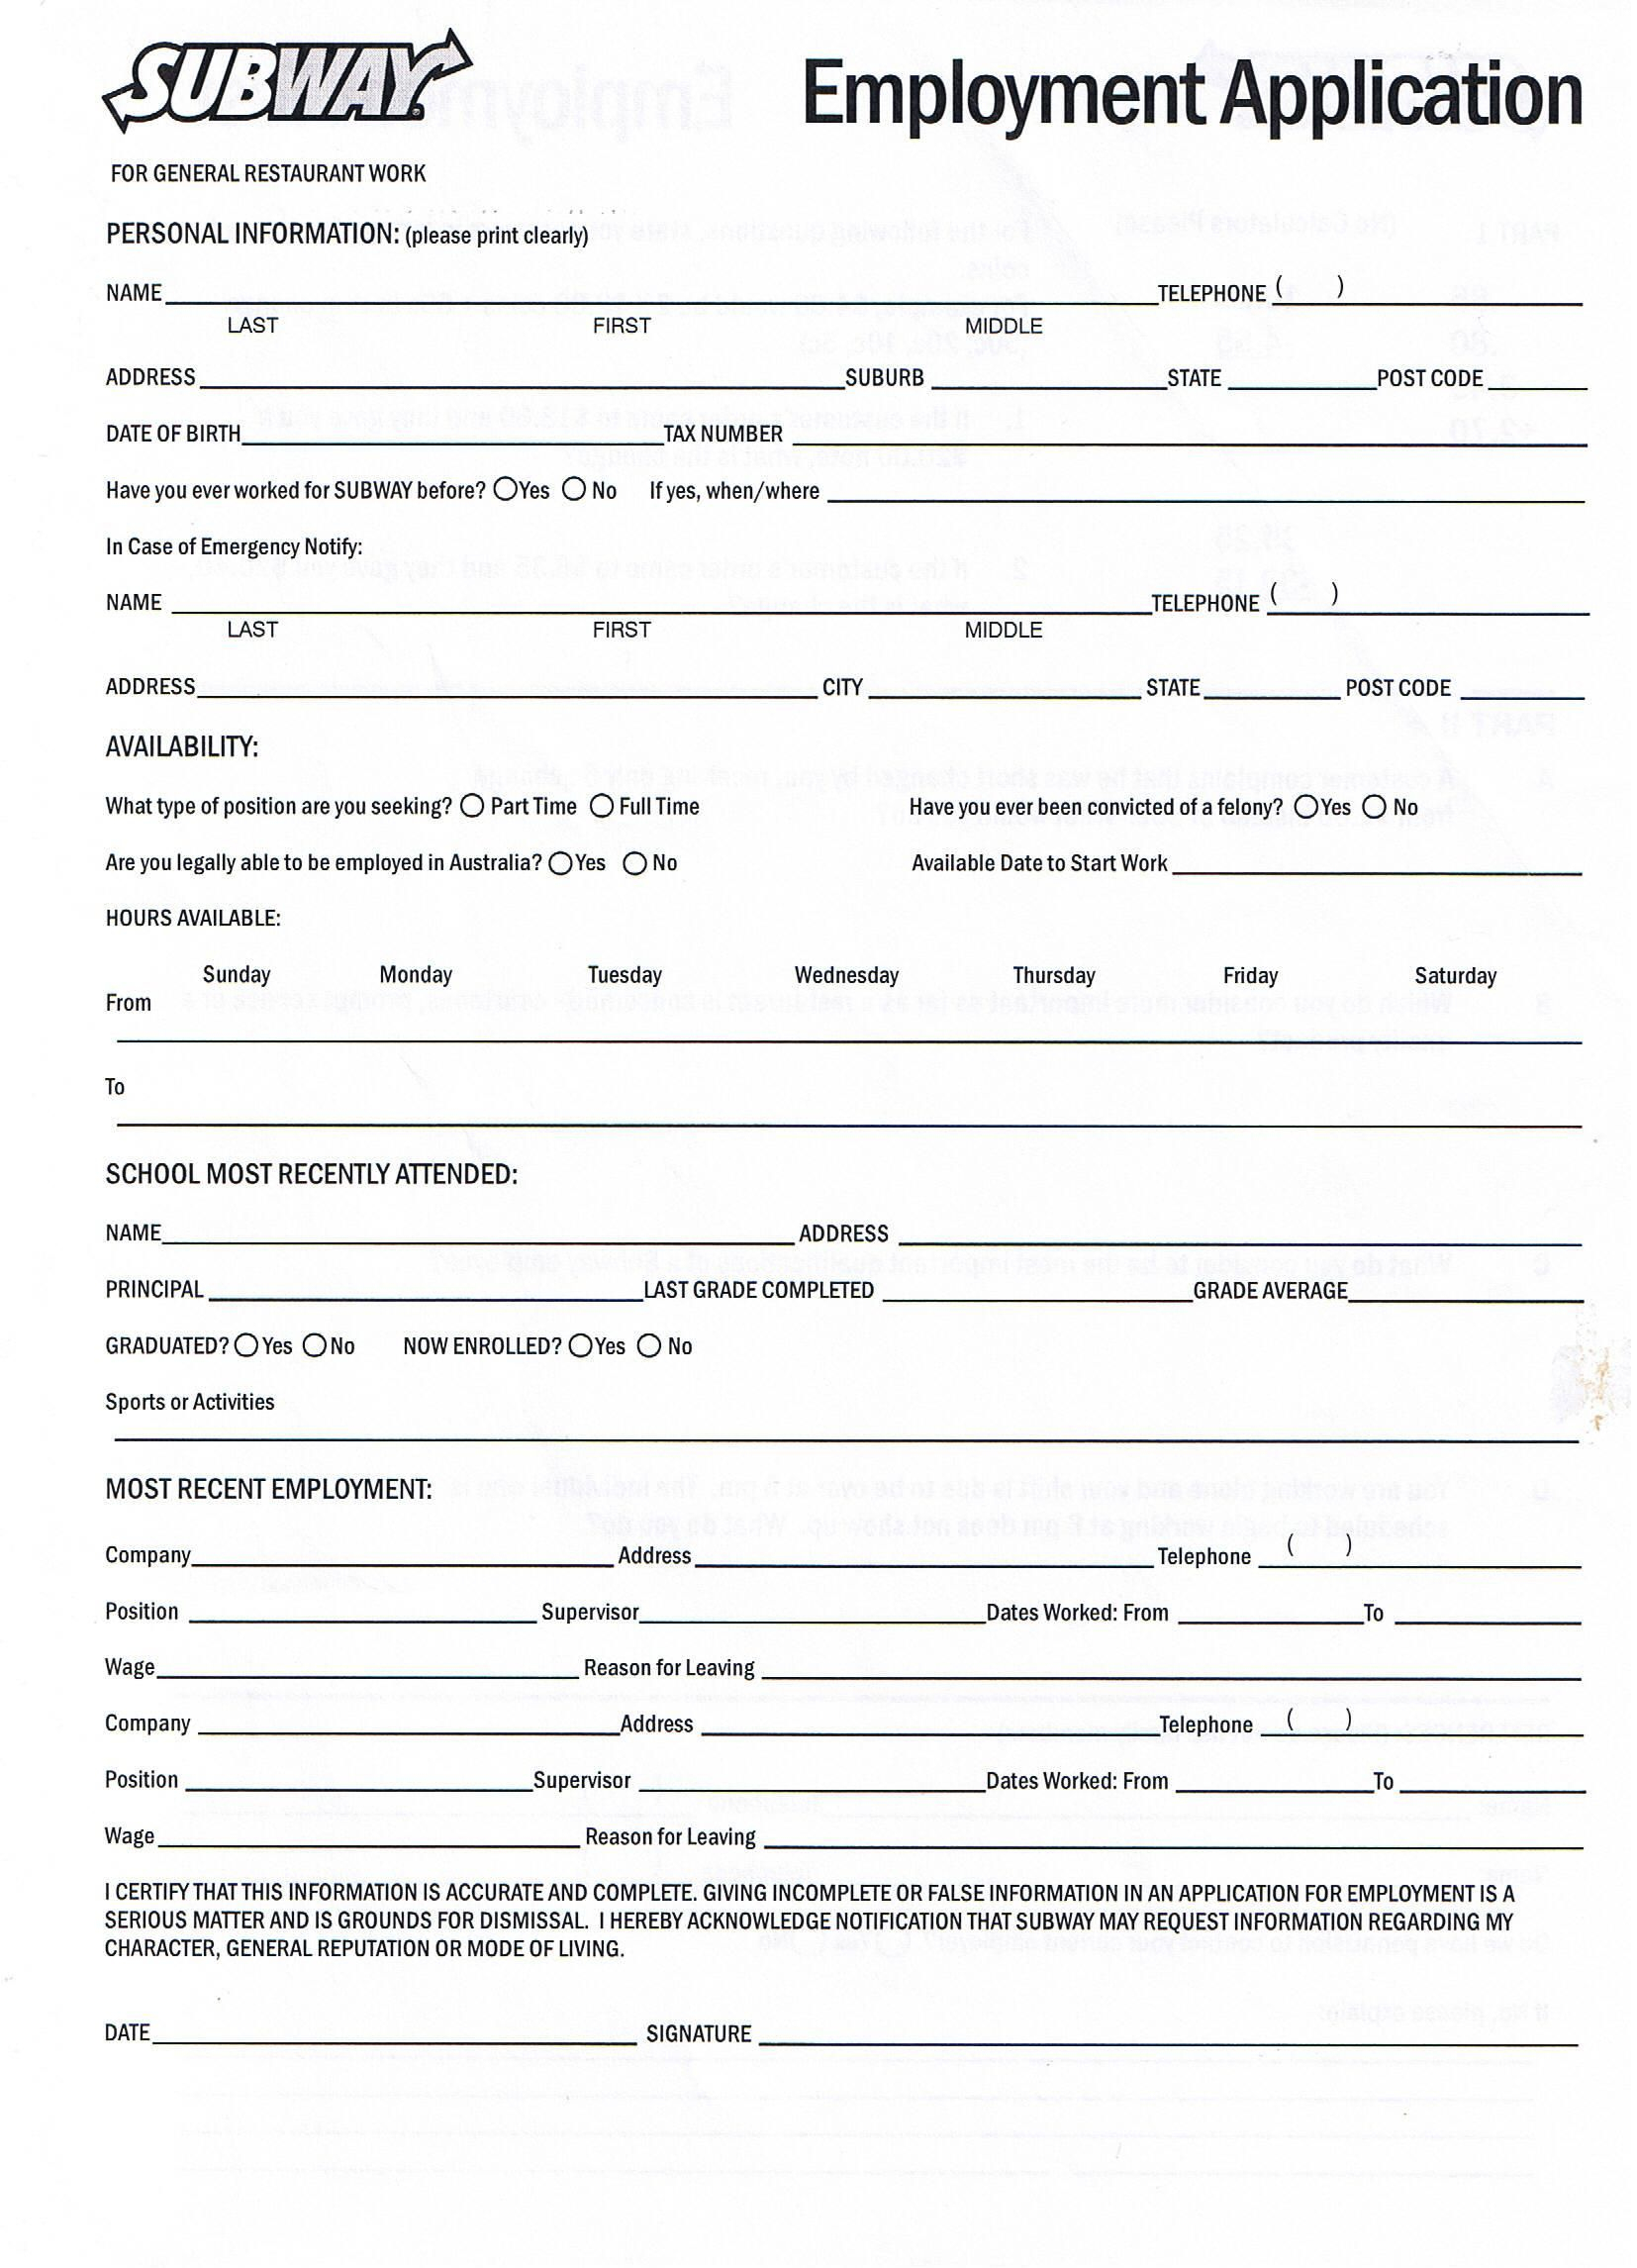 Printable Job Application Forms Online Forms, Download And Print - Free Printable Fafsa Application Form